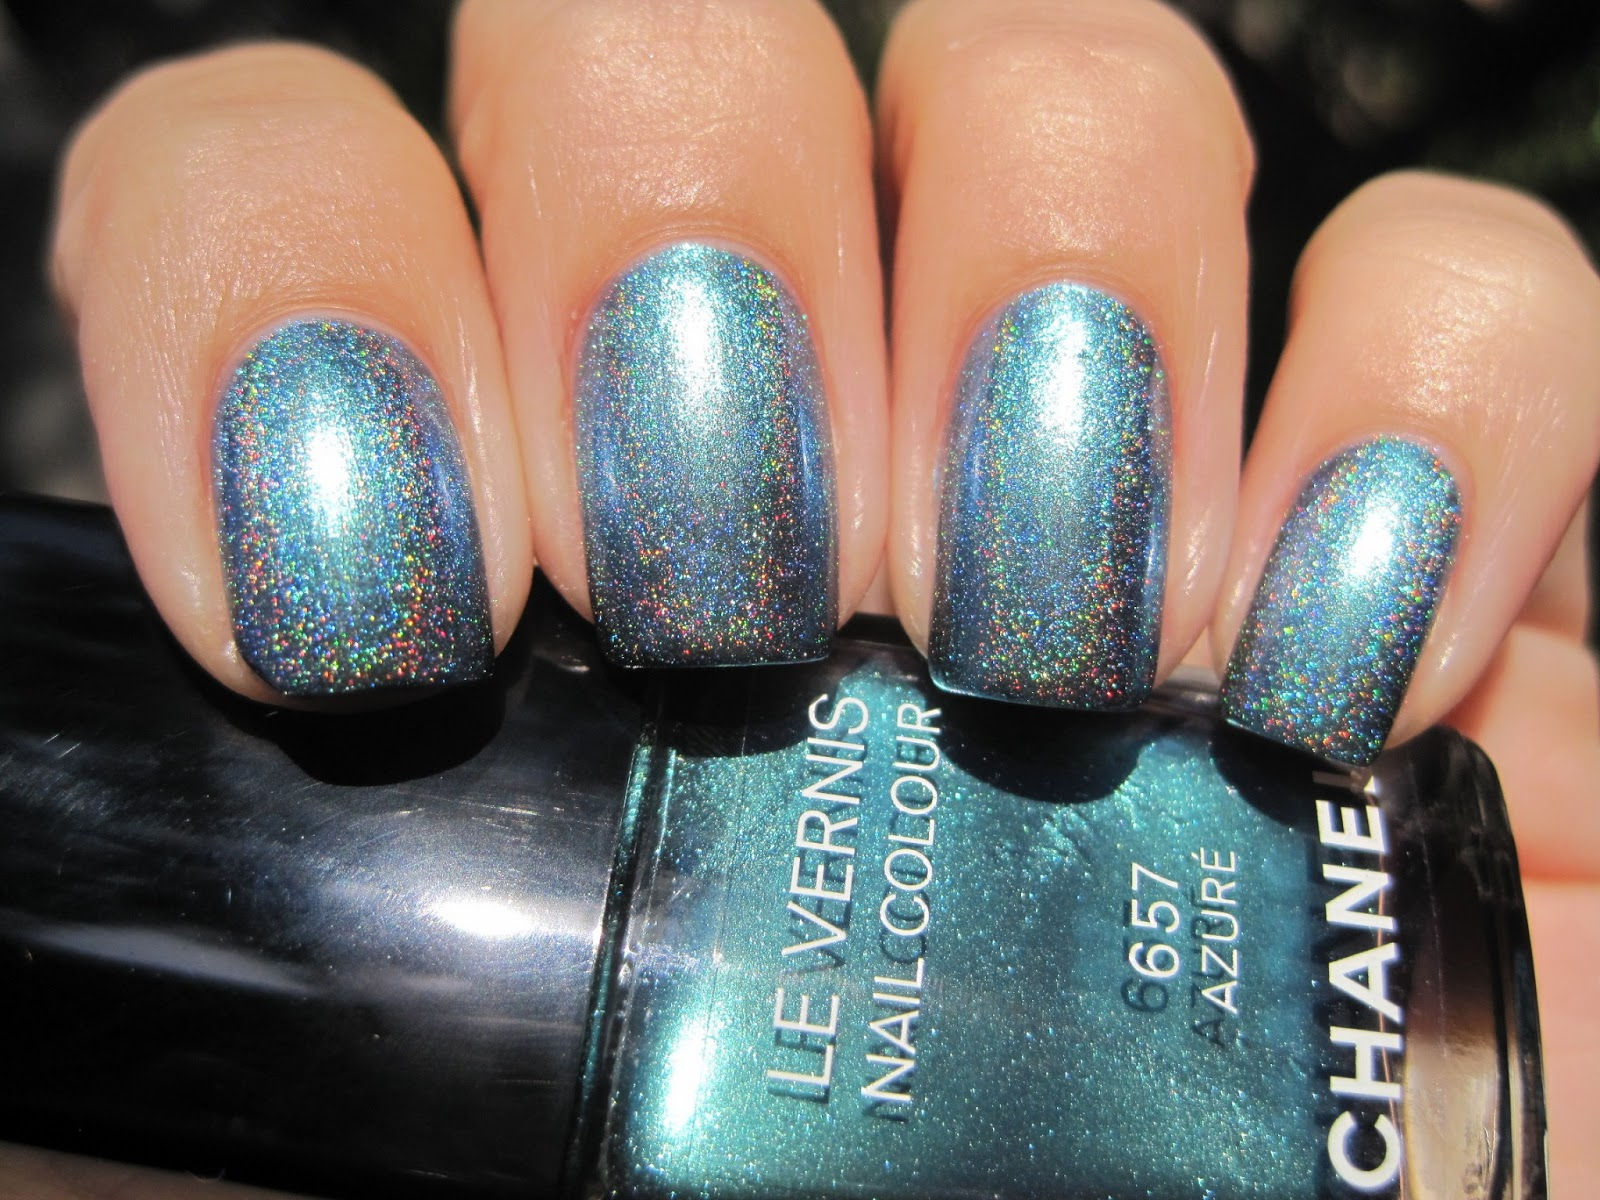 Sparkly Vernis: Chanel Azure is a color shifting pearly turquoise